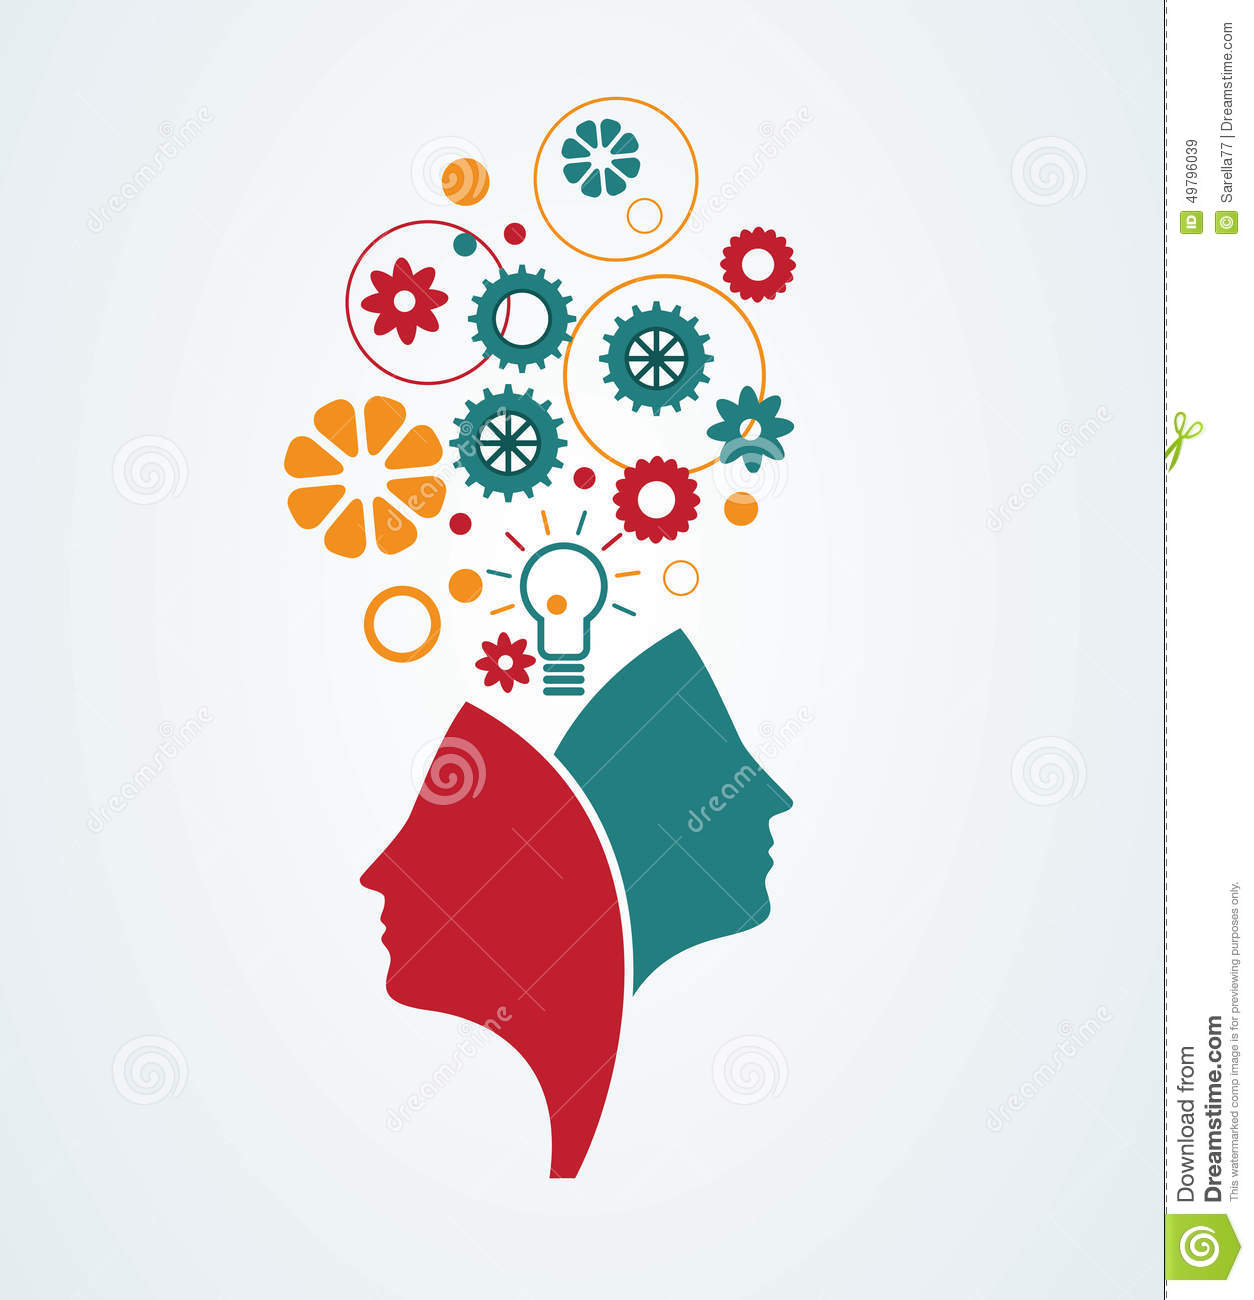 Creative minds stock vector. Illustration of person ...